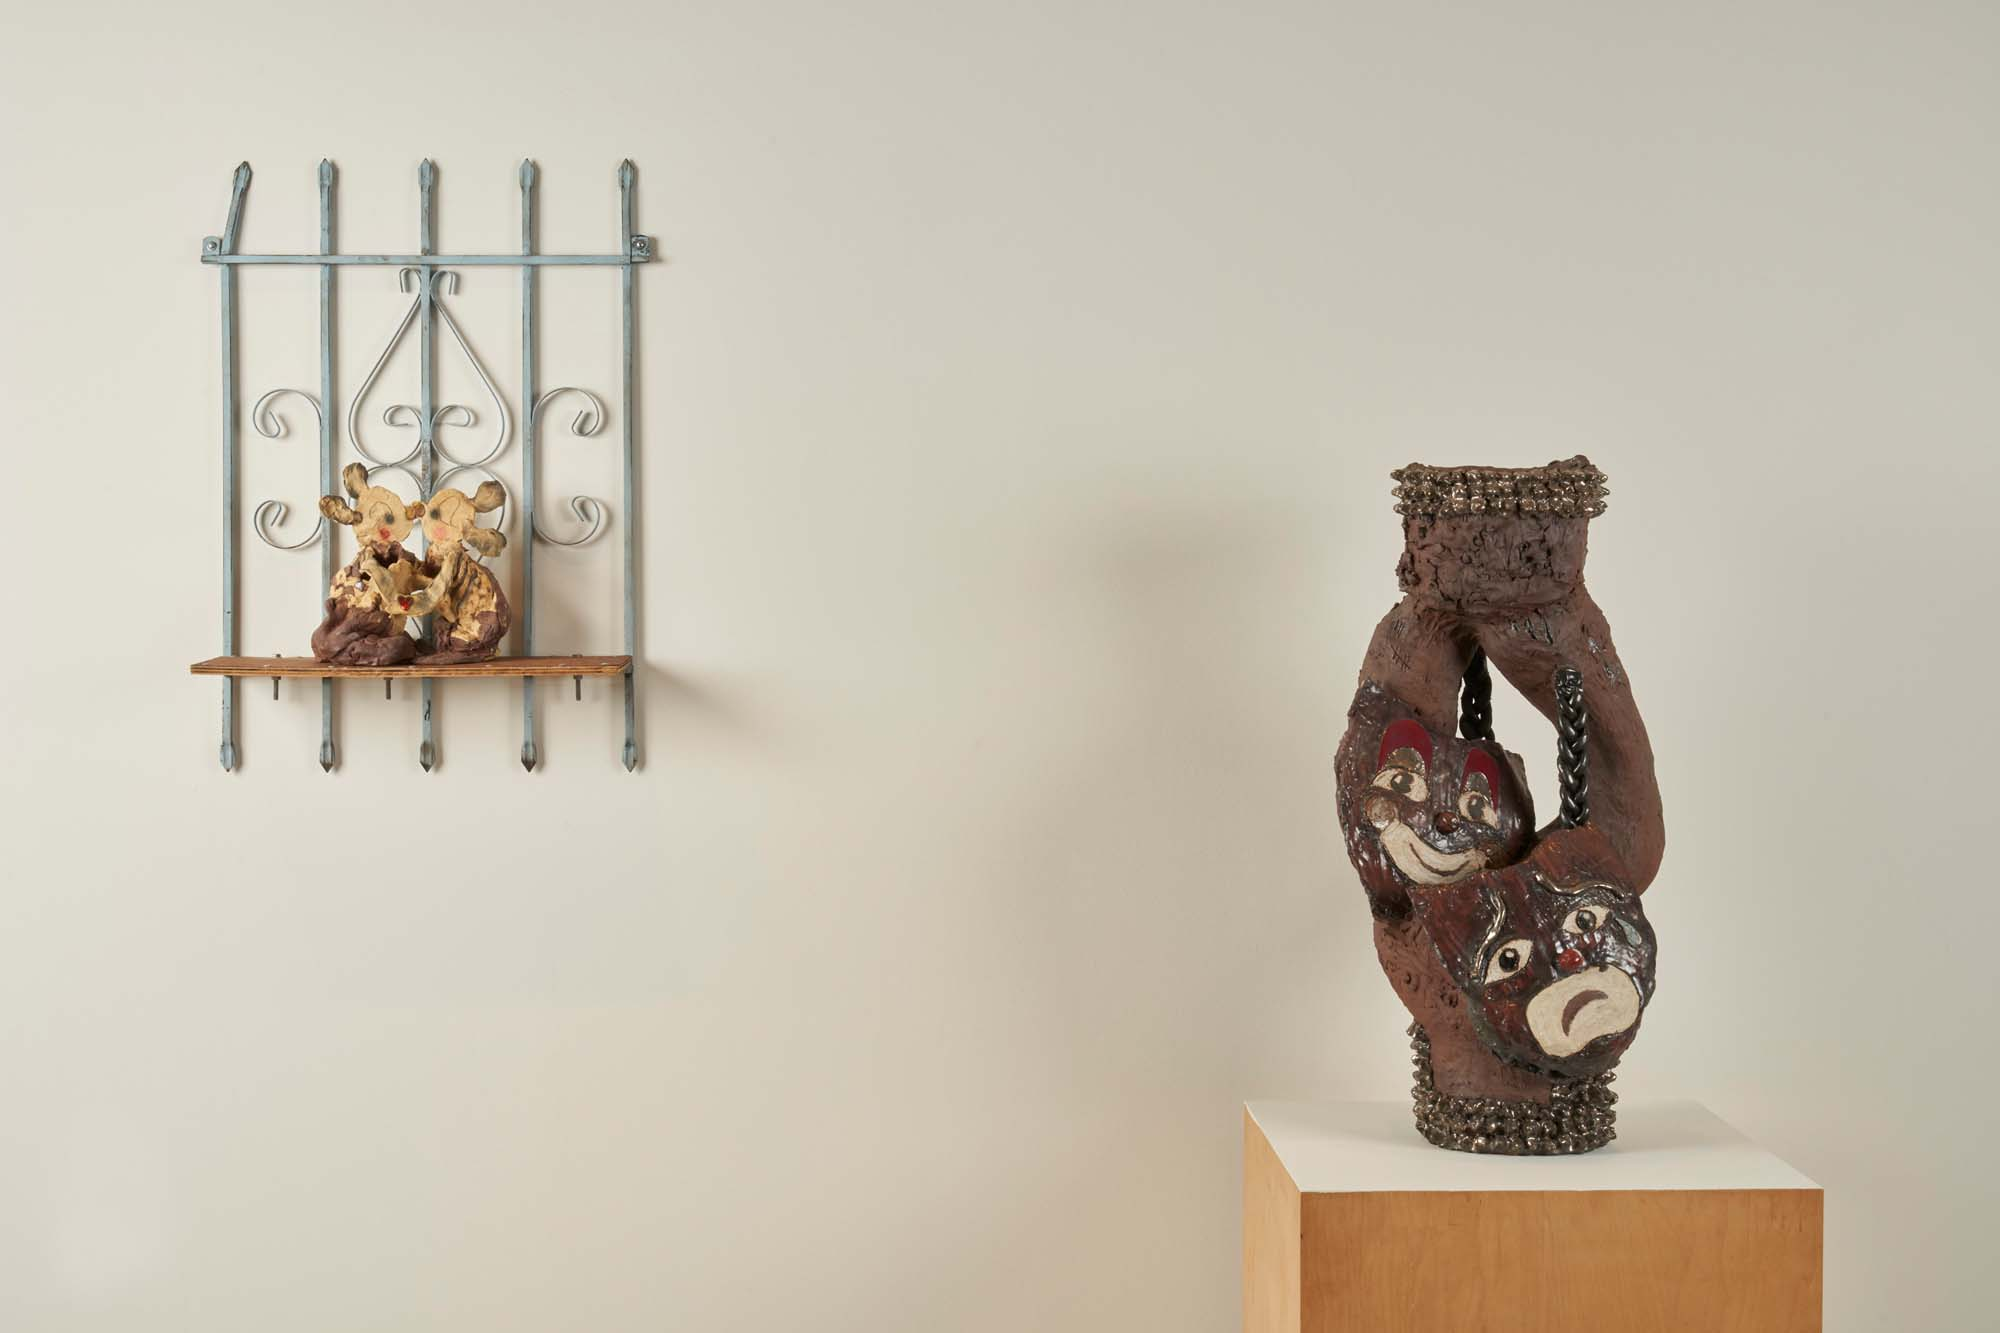 """Image of two ceramic sculptures by Diana Yesenia Alvarado, """"Kiss"""" (left) and """"Smile Now Cry Later"""" (right)."""